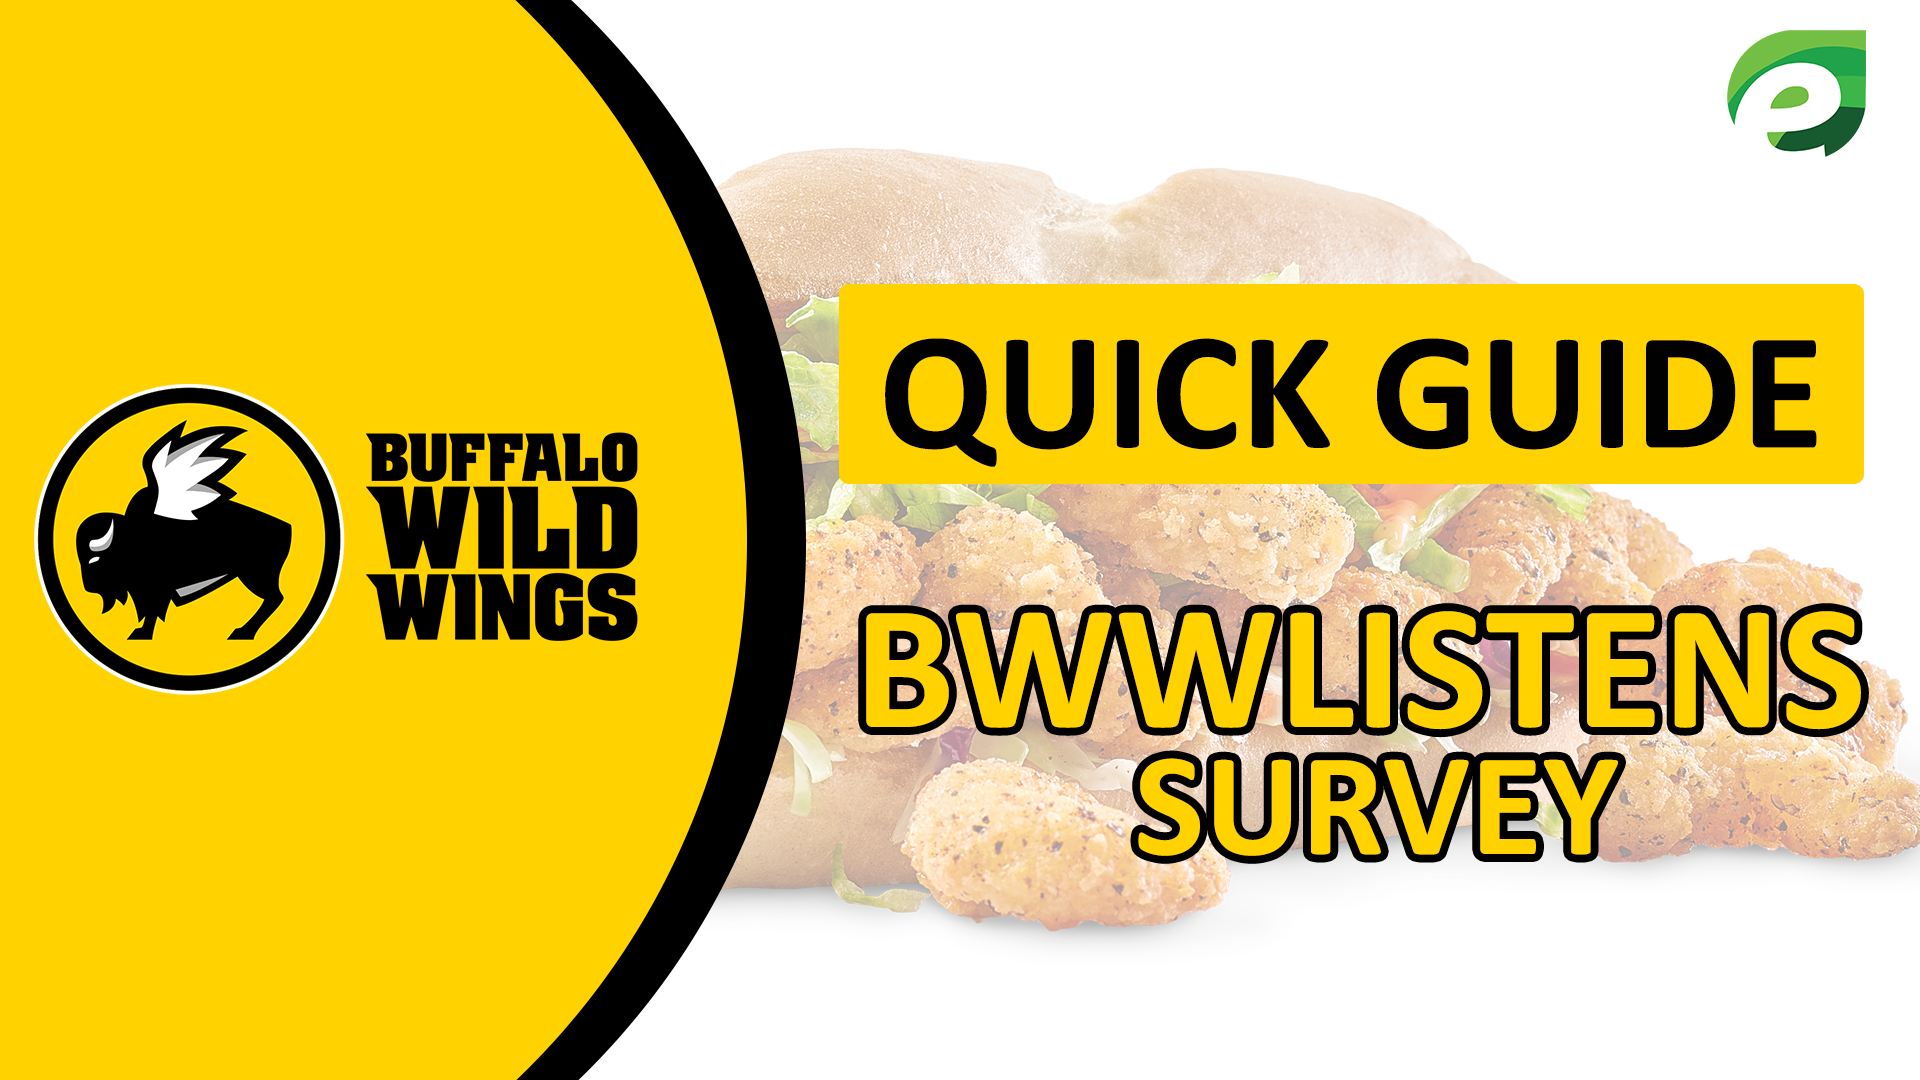 Bwwlistens survey Quick Guide